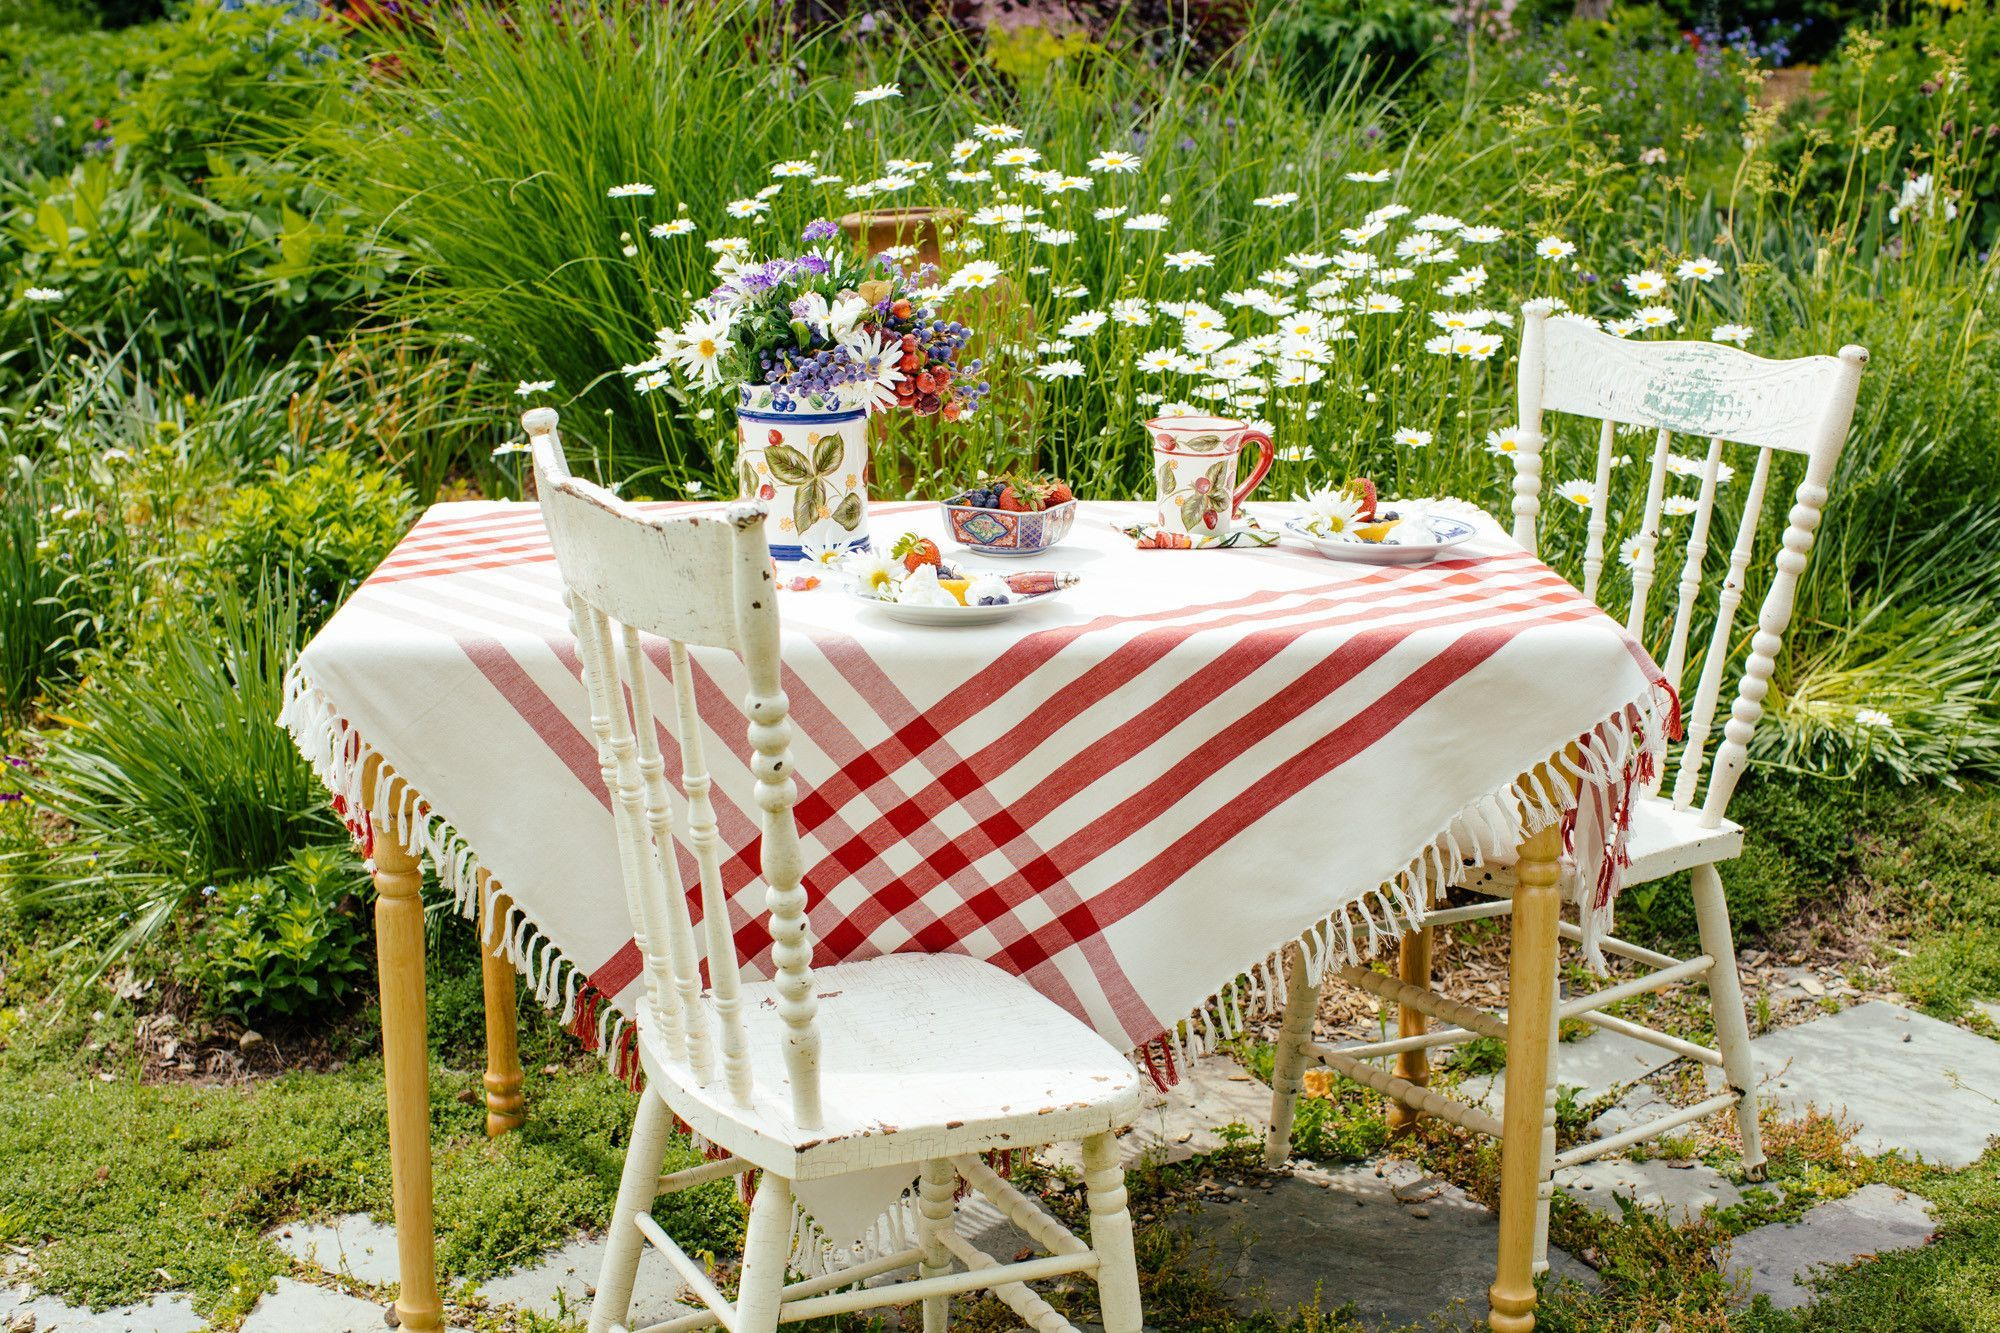 HAPPY PICNIC GINGHAM TABLE CLOTH